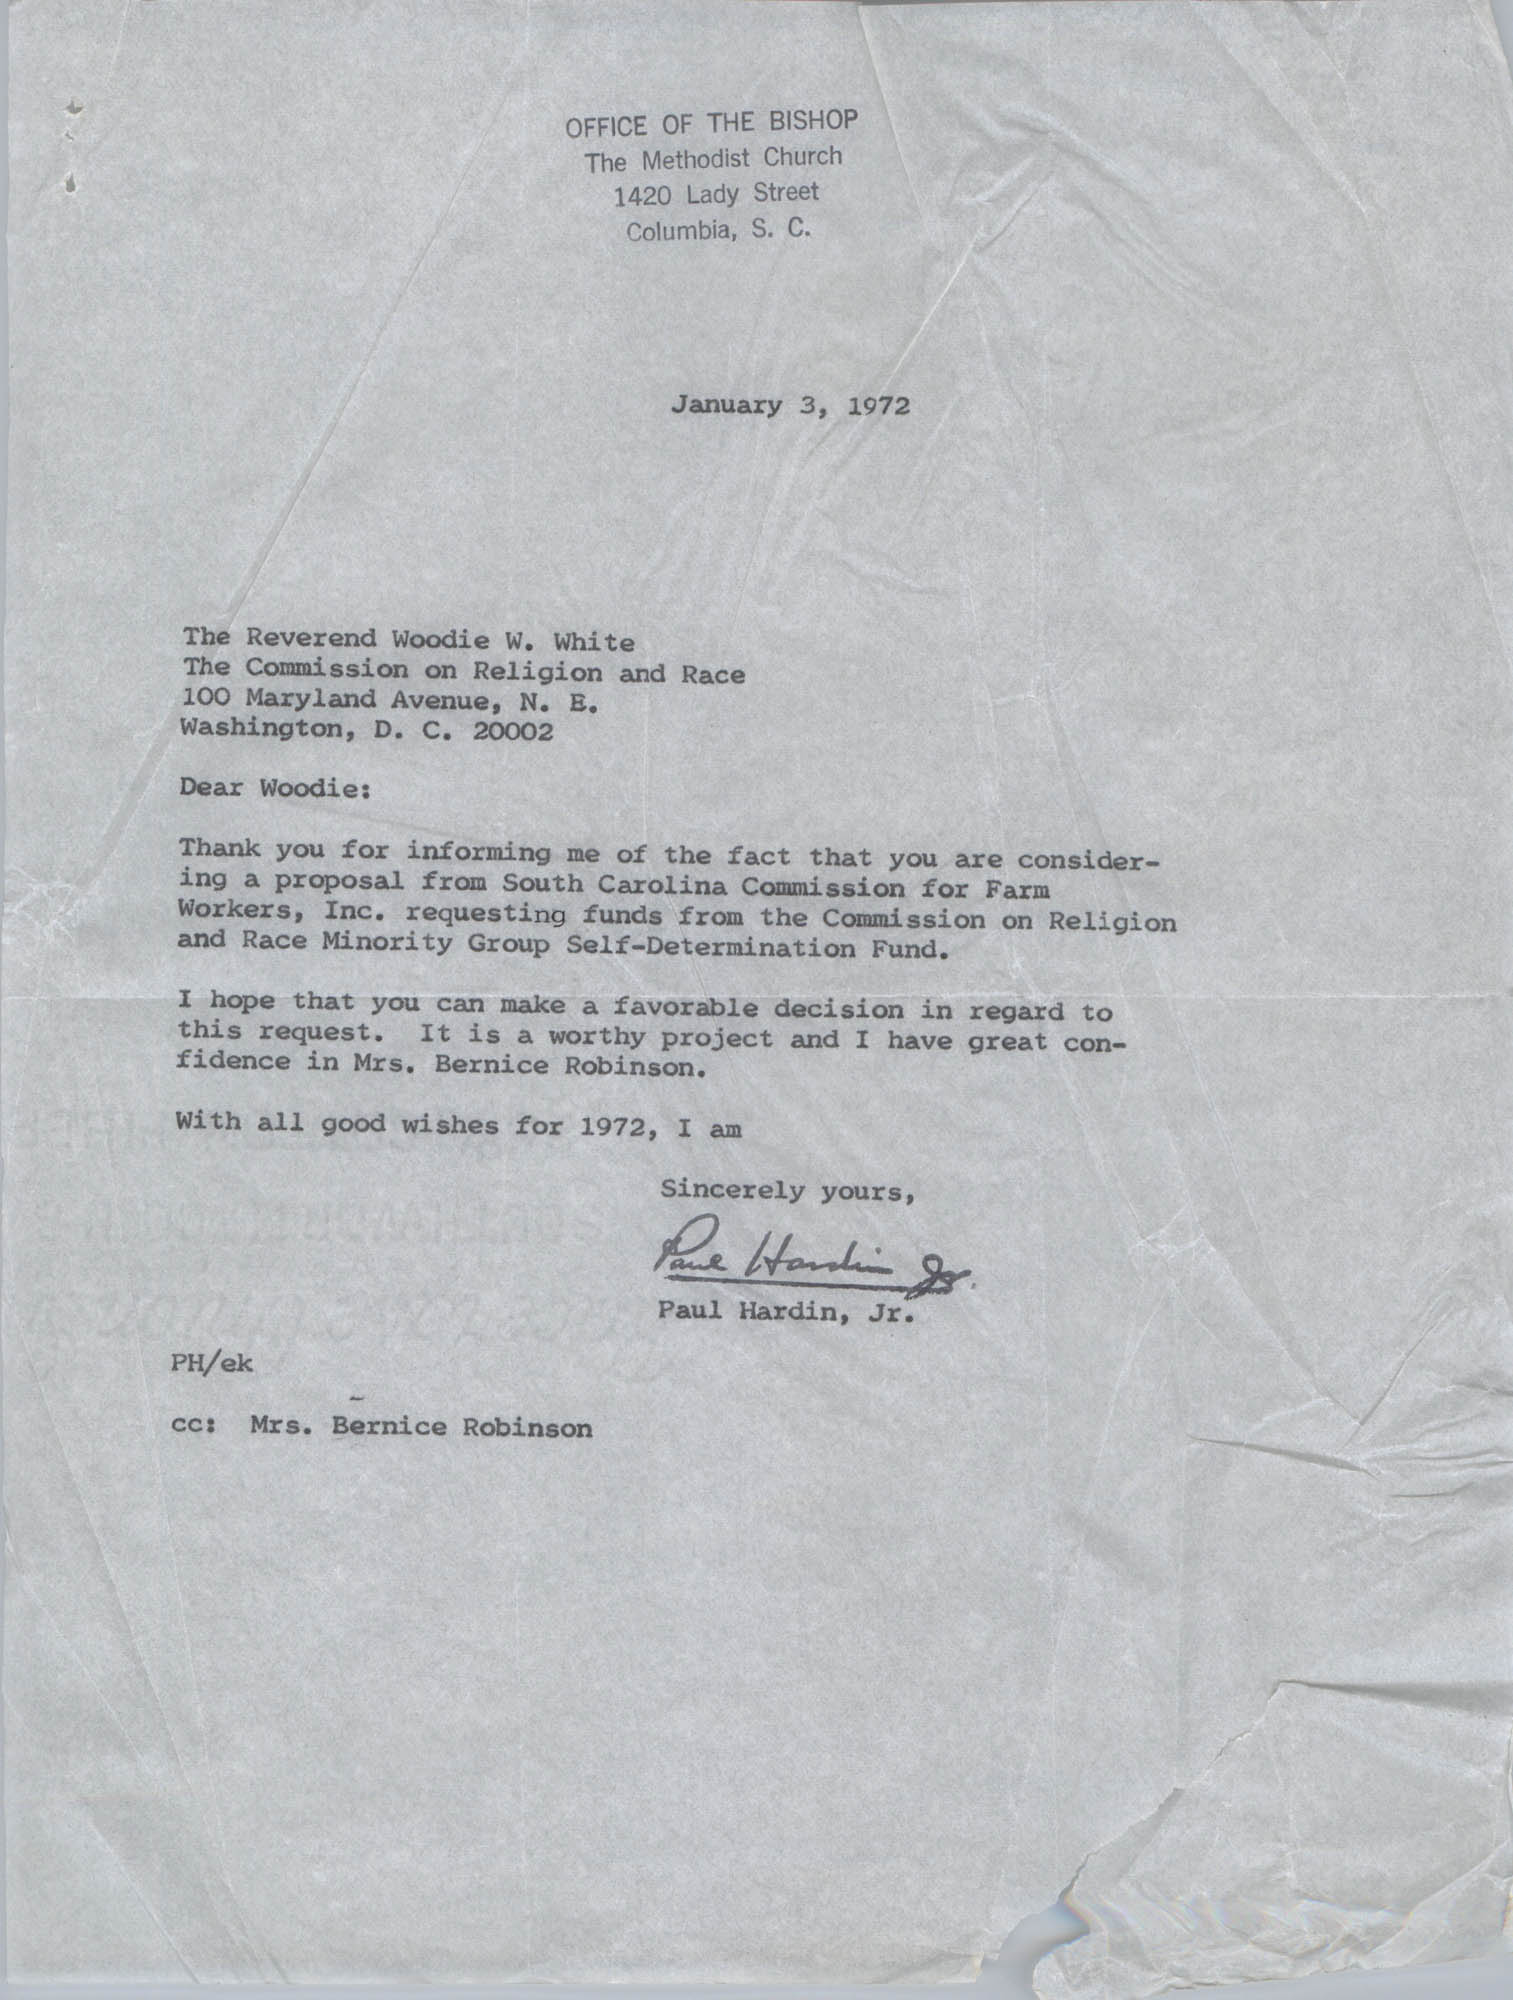 Letter from Paul Hardin, Jr. to Woodie W. White, January 3, 1972